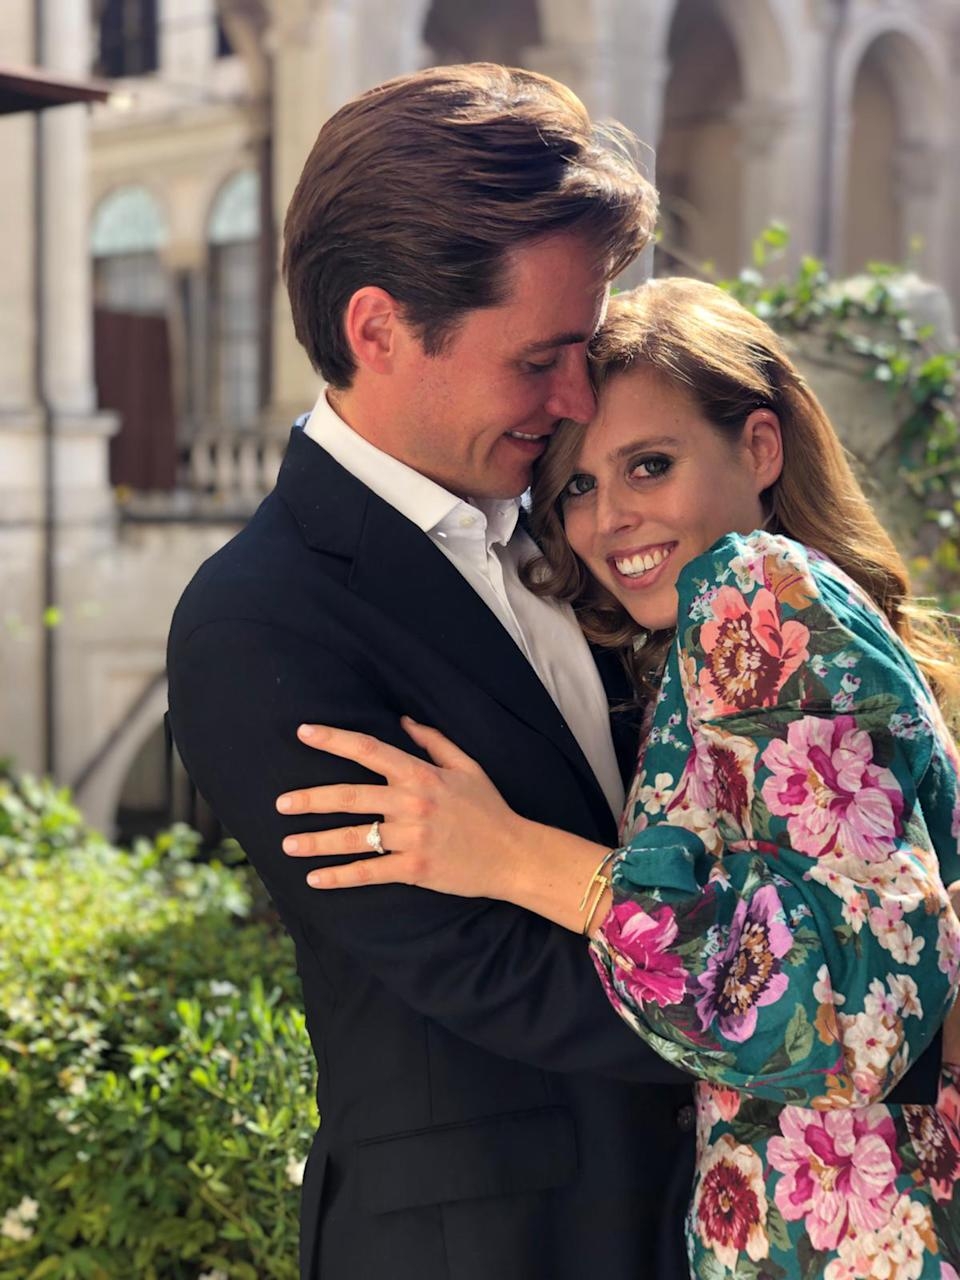 Princess Beatrice and Mr Edoardo Mapelli Mozzi pose together as their engagement is announced.